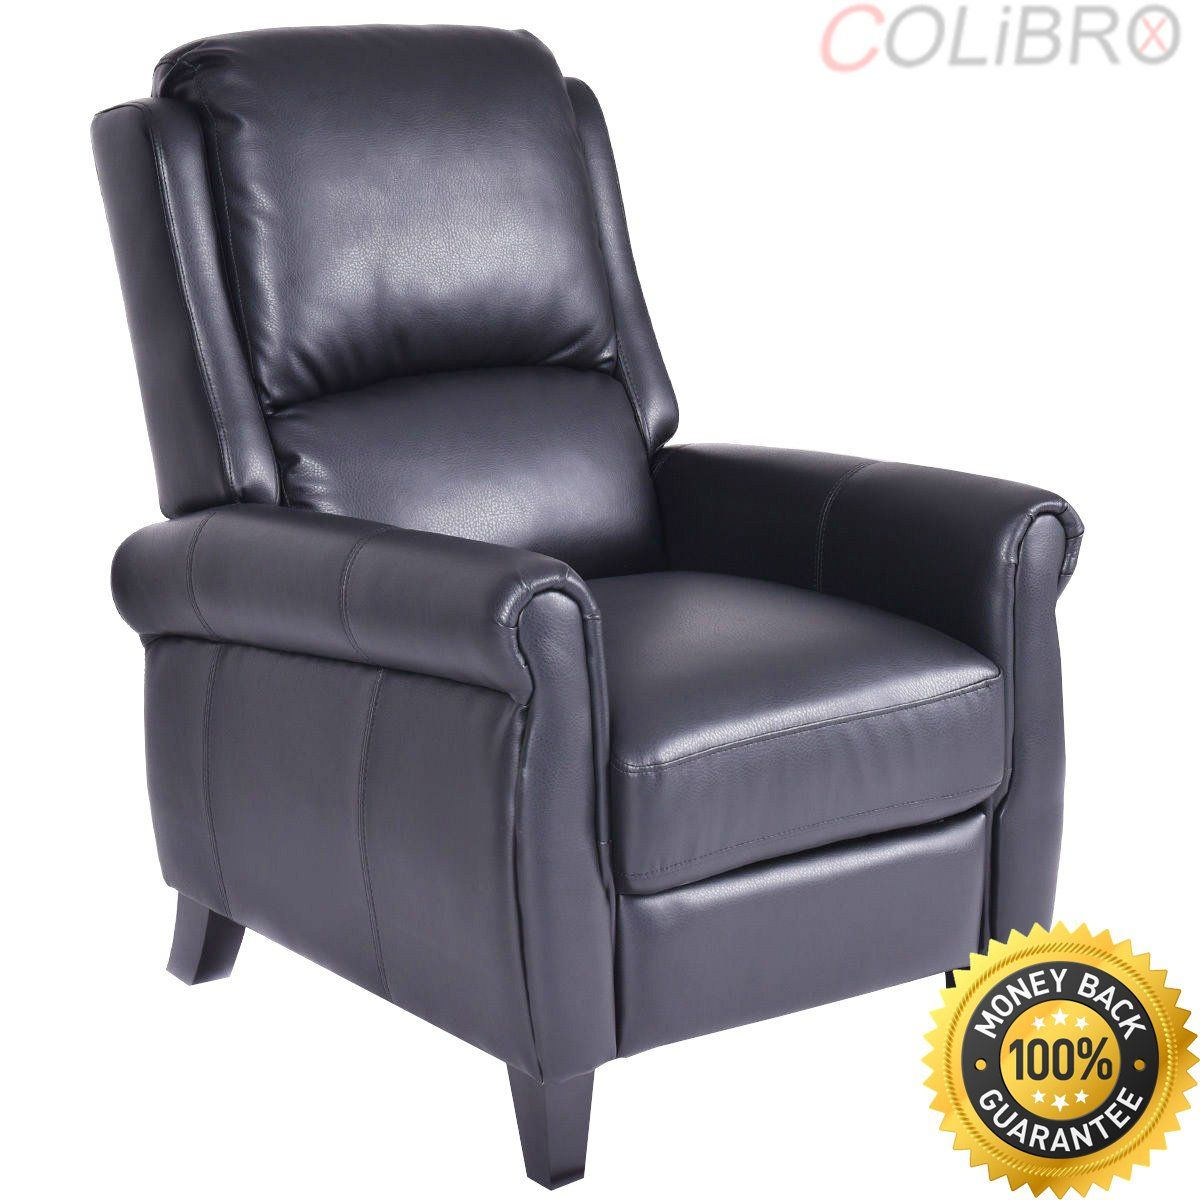 Colibrox Leather Recliner Accent Chair Push Back Living Room Home Furniture W Leg Rests Best Push Back Recliner Re Leather Recliner Recliner Chair Recliner